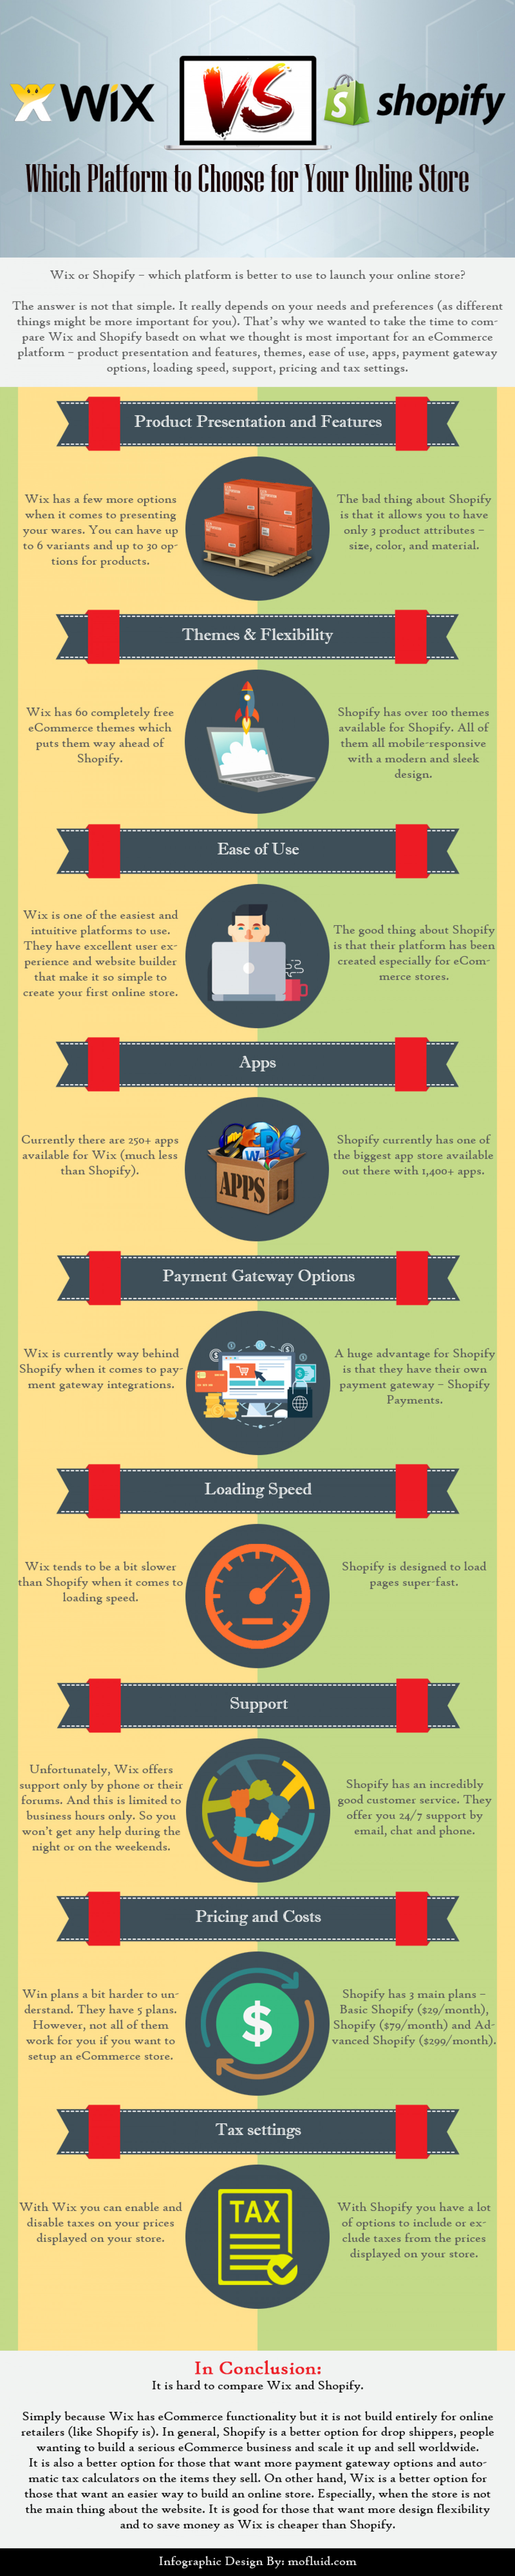 Wix vs Shopify: Best Platform For Your Online Store [Infographic] Infographic